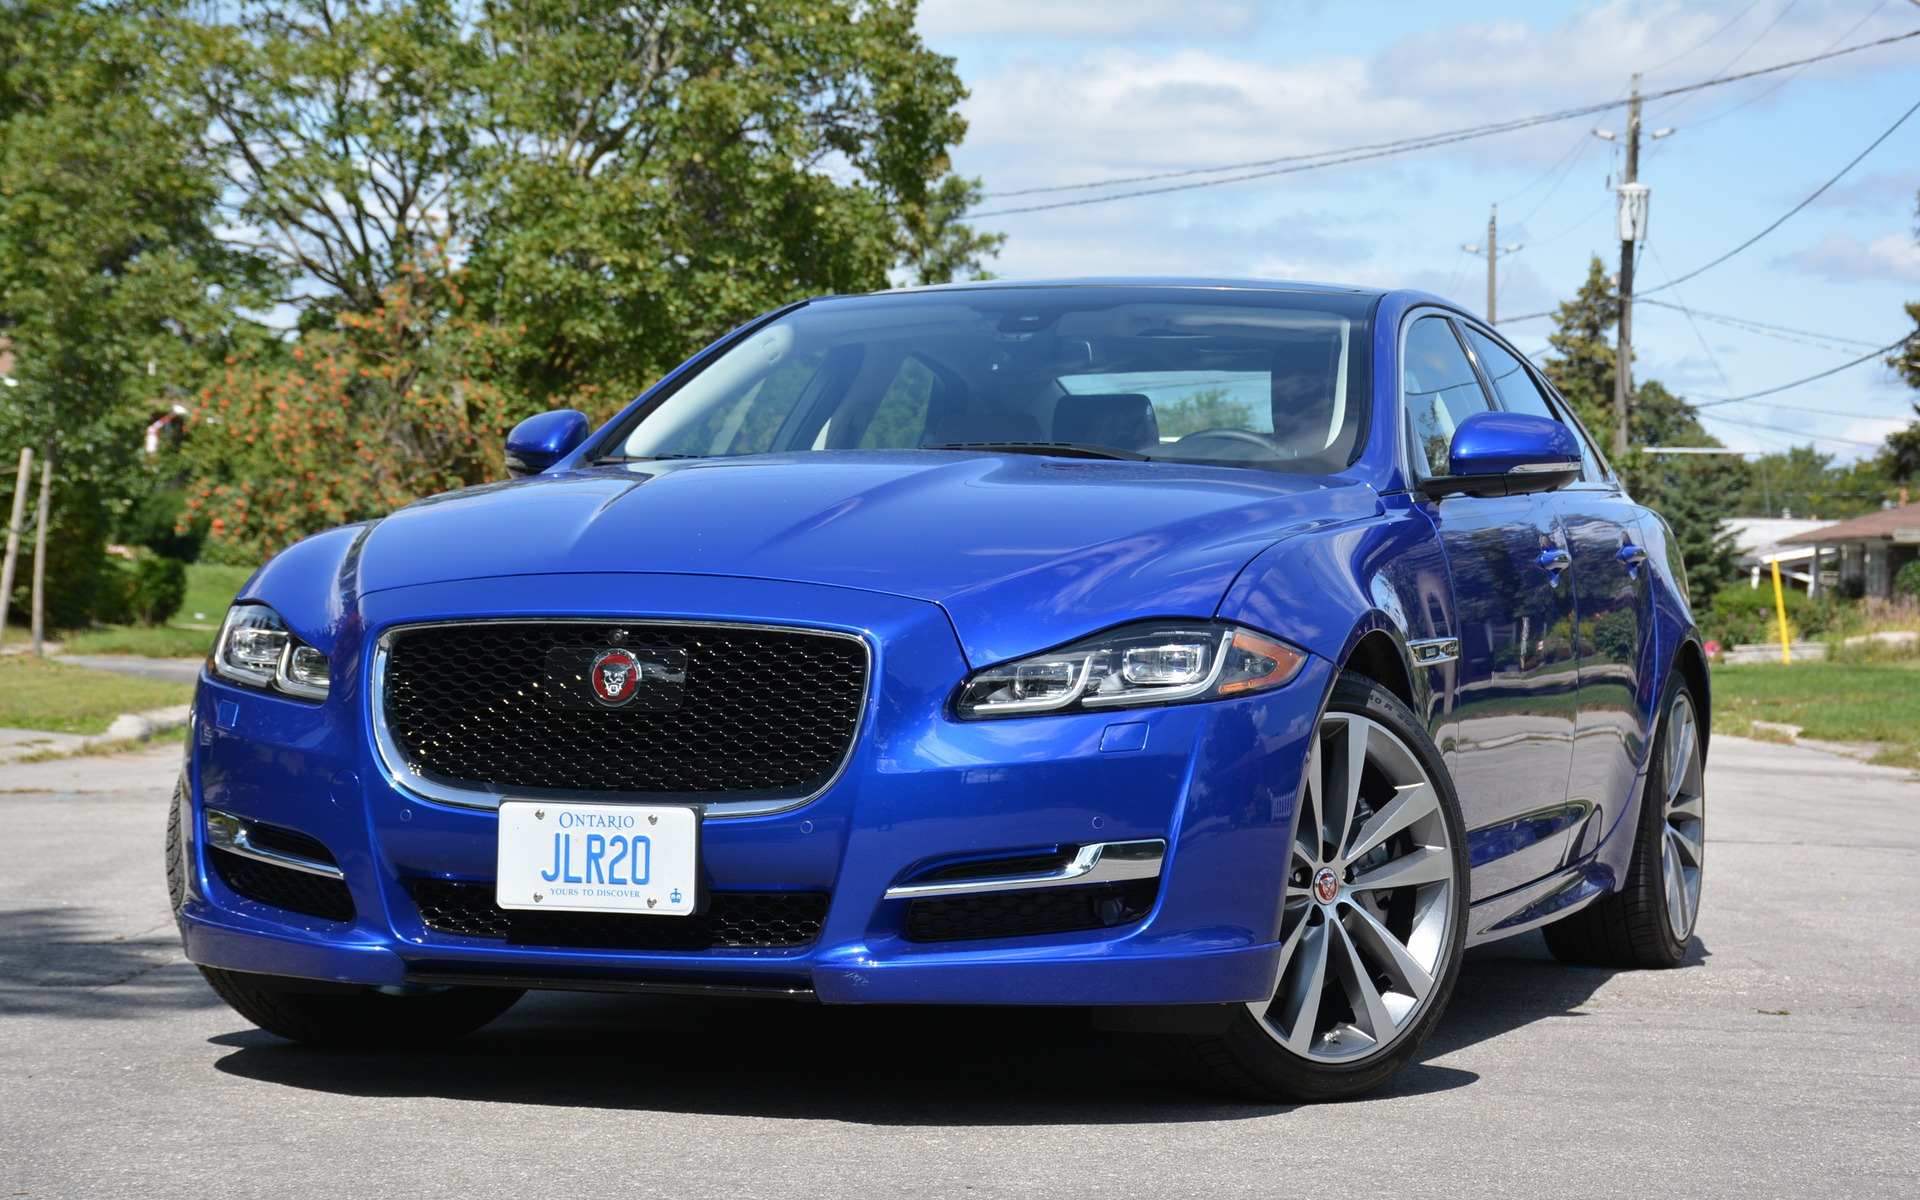 The 2017 Jaguar XJ